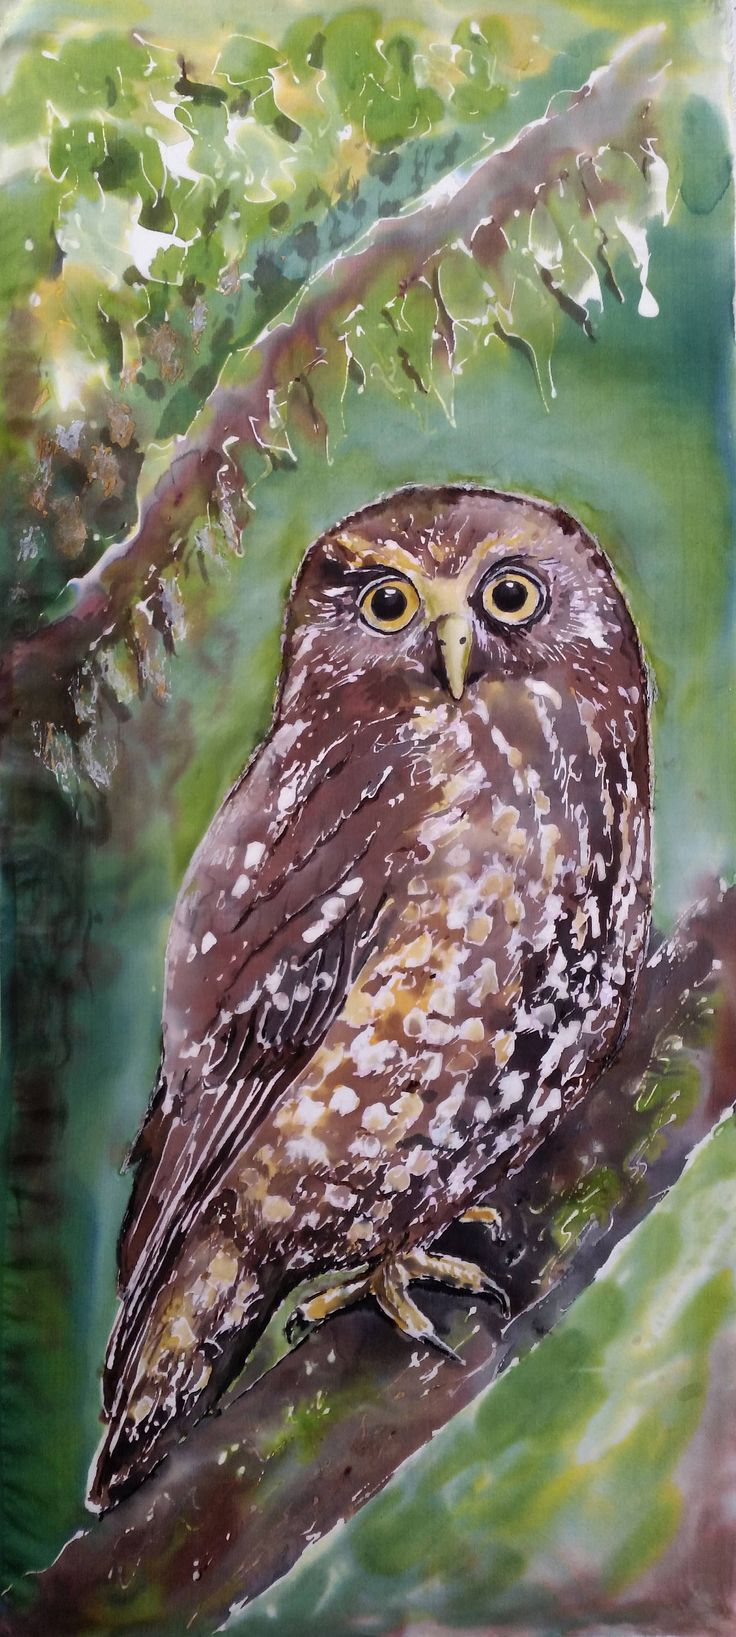 Owl OUTDOOR ART, New Zealand native OWL, Ruru, Morpork, from my original silk painting, Outside Garden Art, New Zealand native Owl bird, by KaySatherleyArt on Etsy